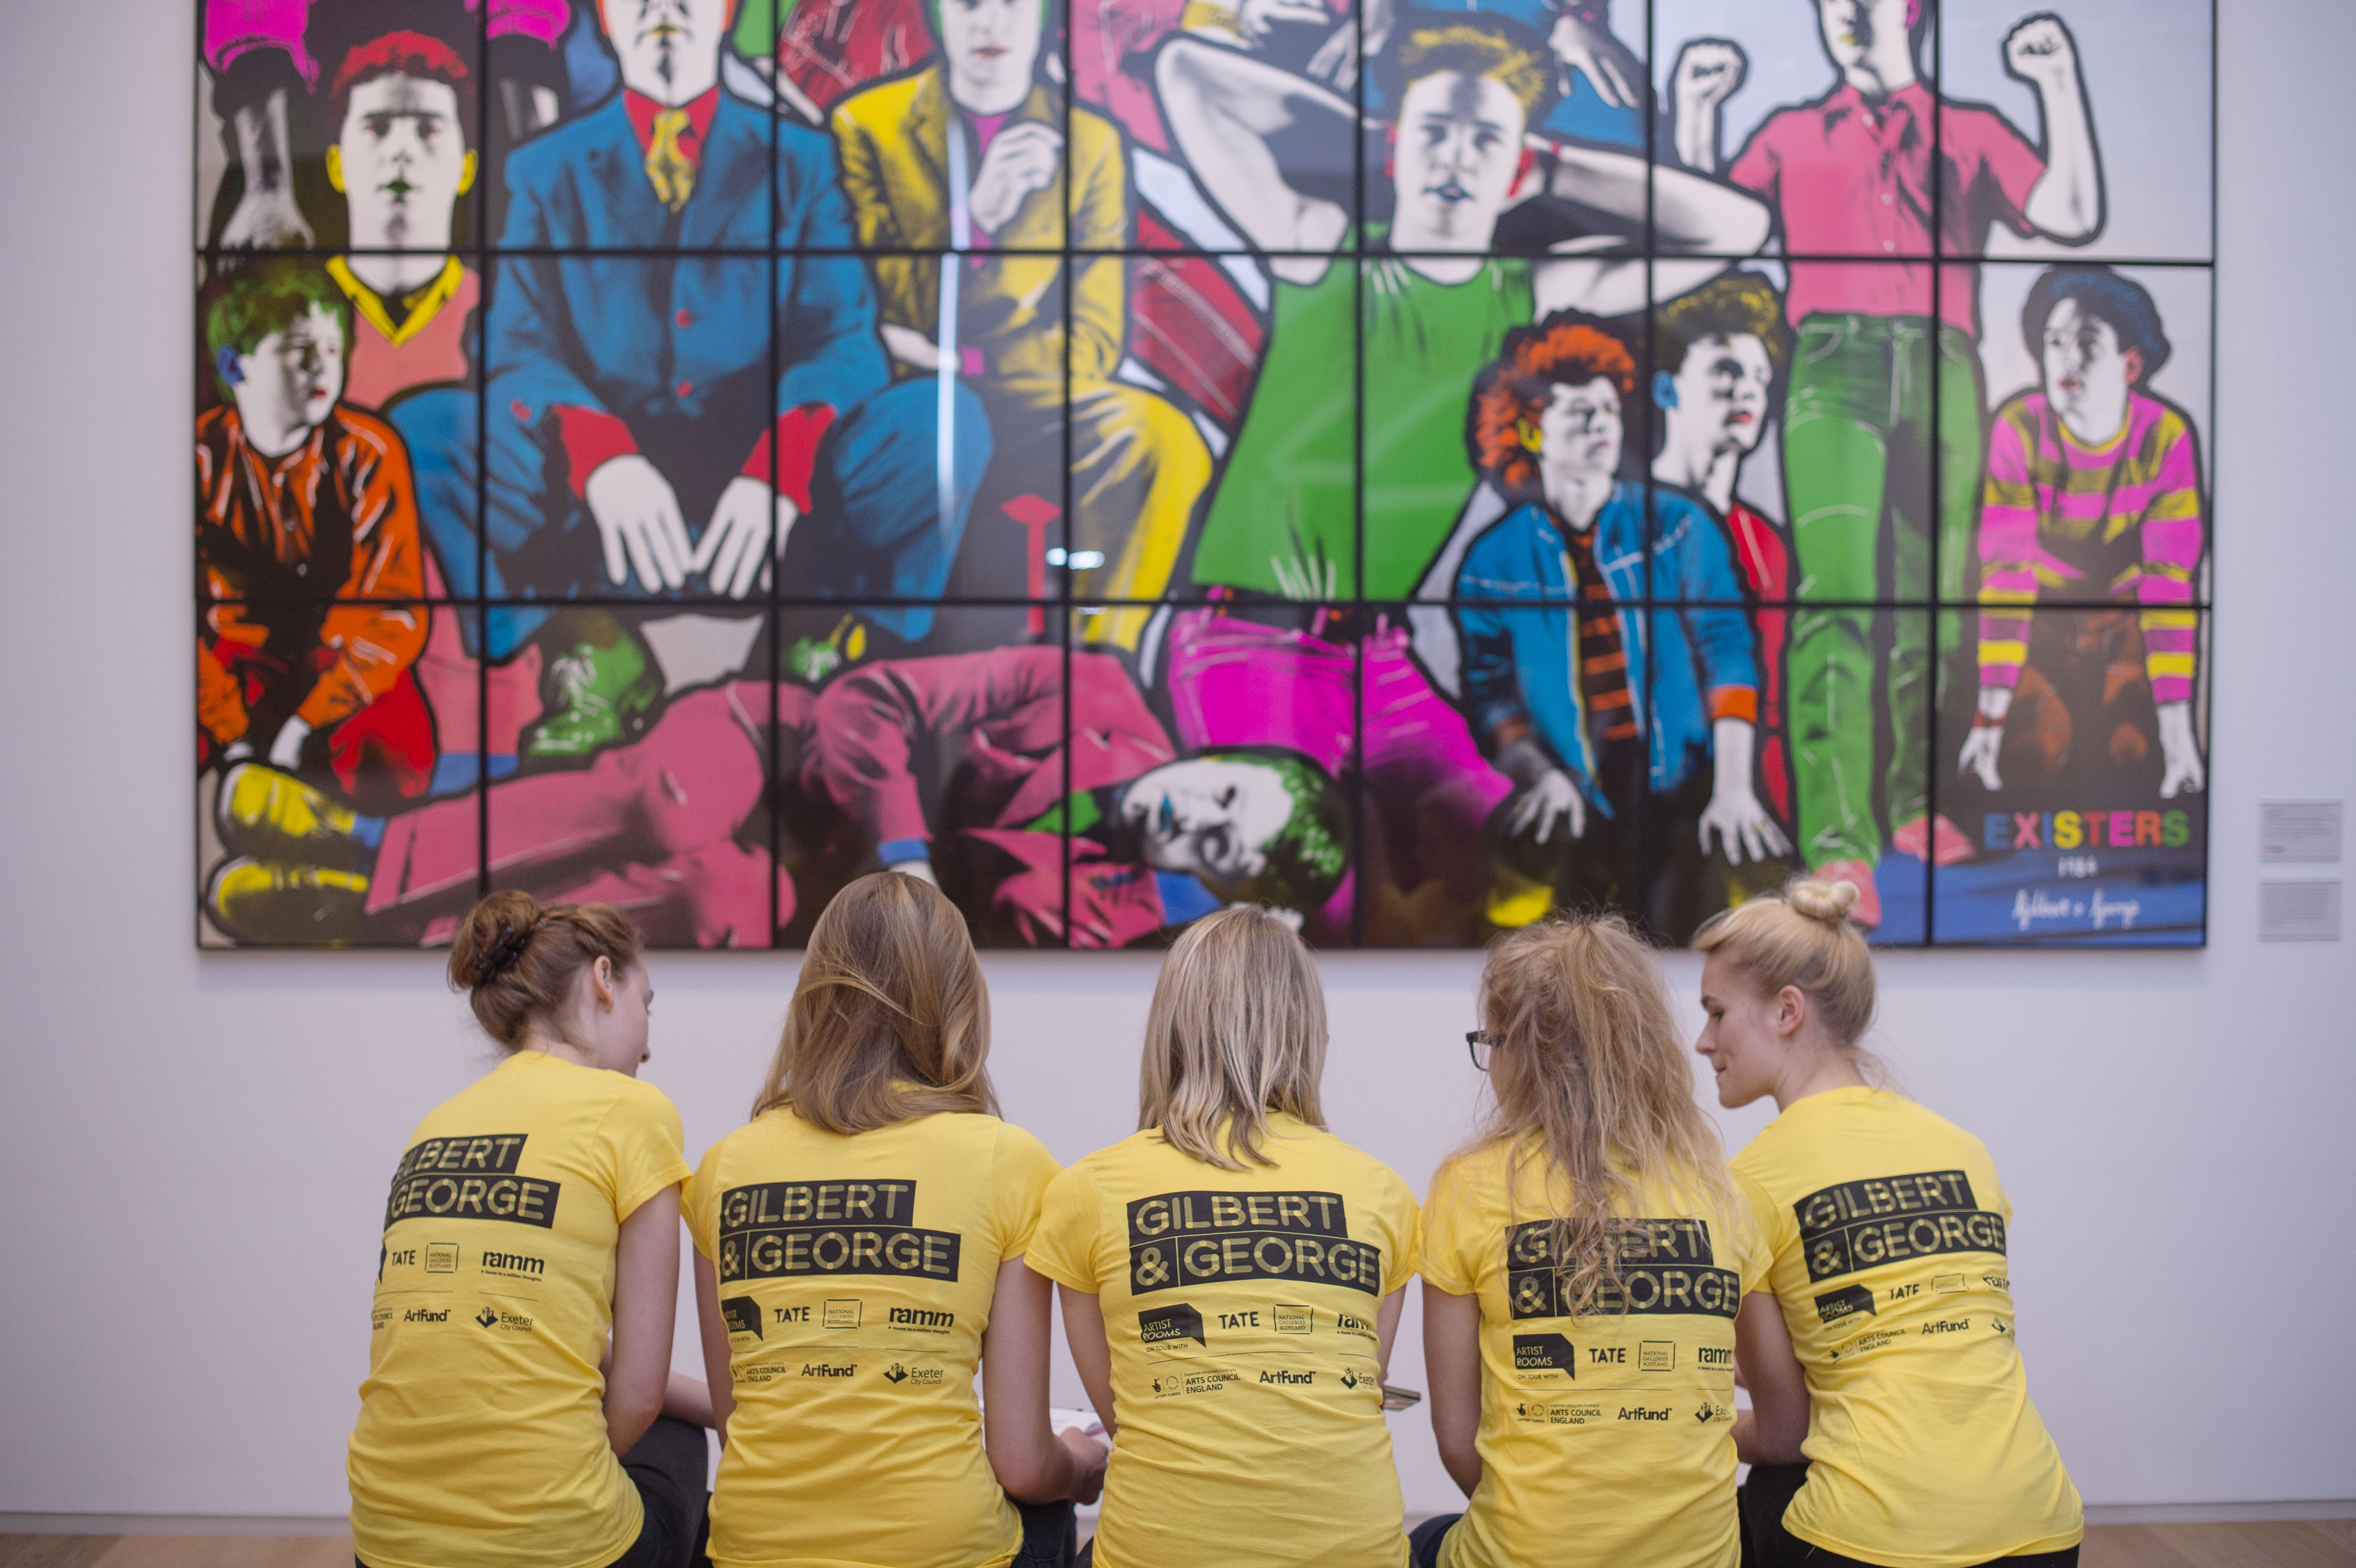 Volunteers in matching yellow T-shirts sitting on a bench facing away from onlooker, looking at Gilbert &George image on gallery wall